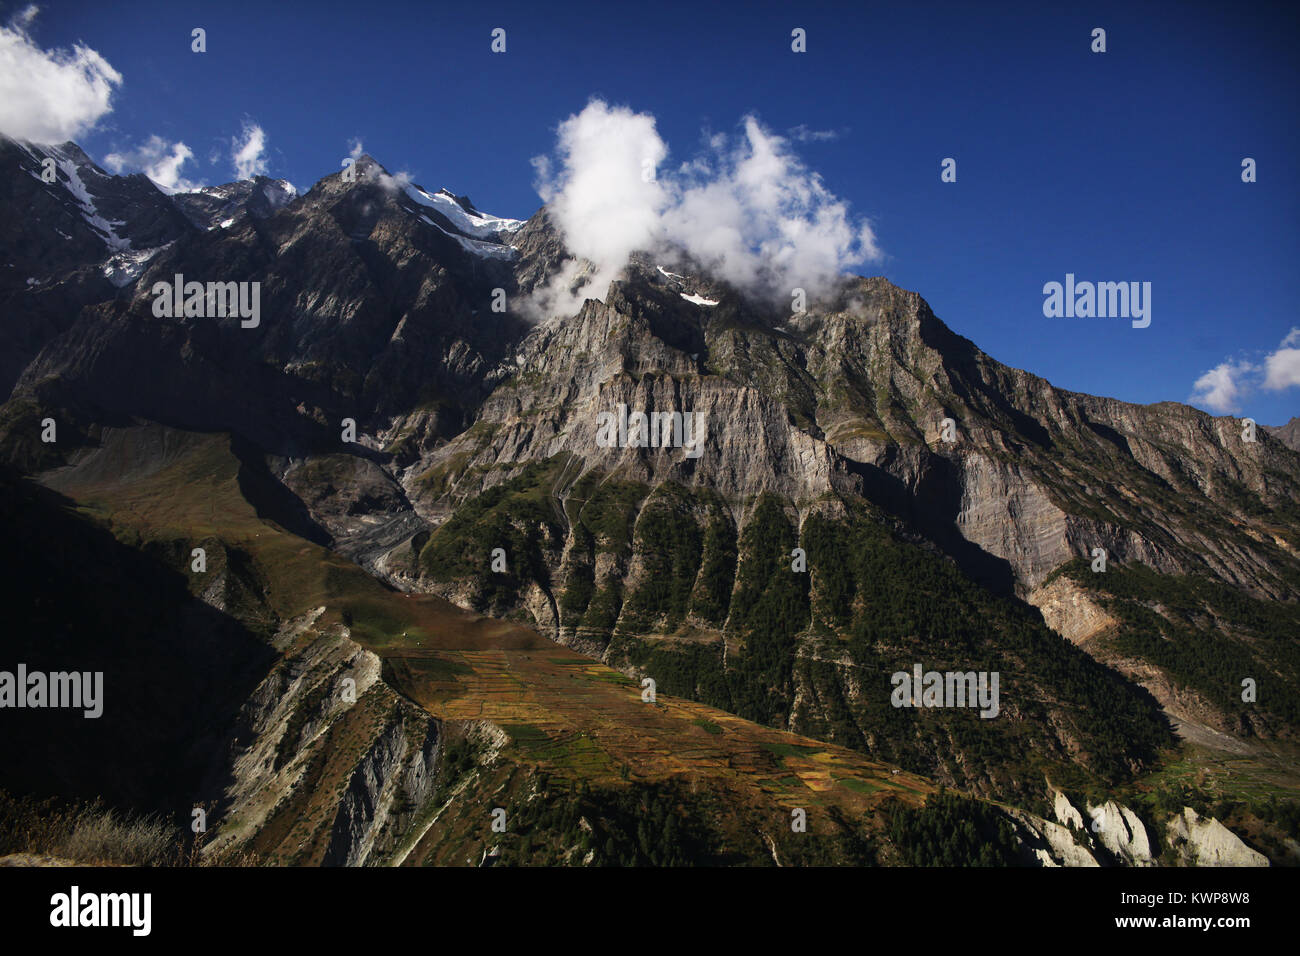 majestic landscape with rocky mountains and clouds in indian himalayas, keylong region - Stock Image